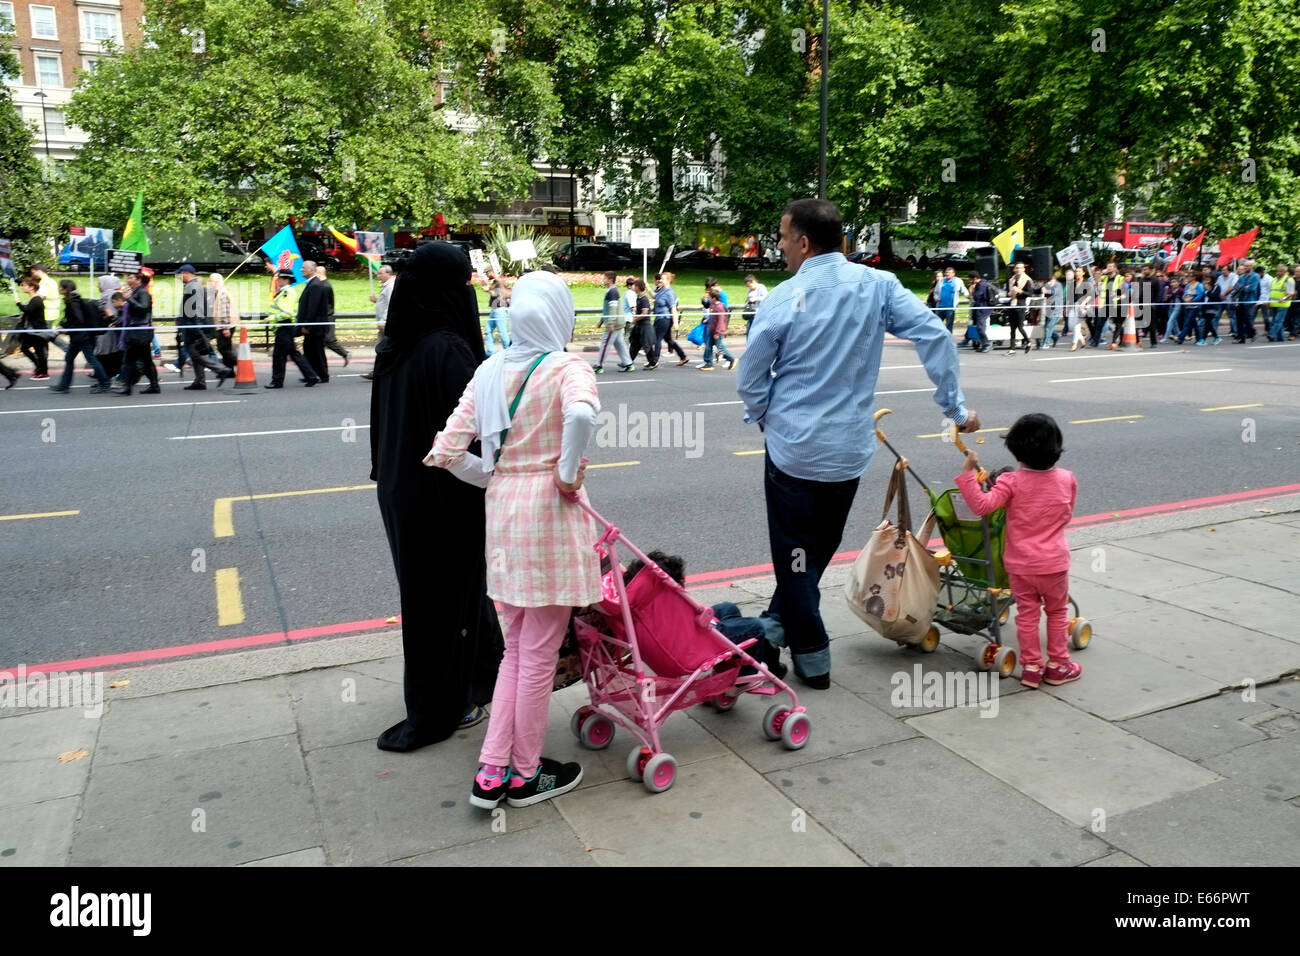 Muslim families look on as the anti ISIS demo approaches Marble arch - Stock Image